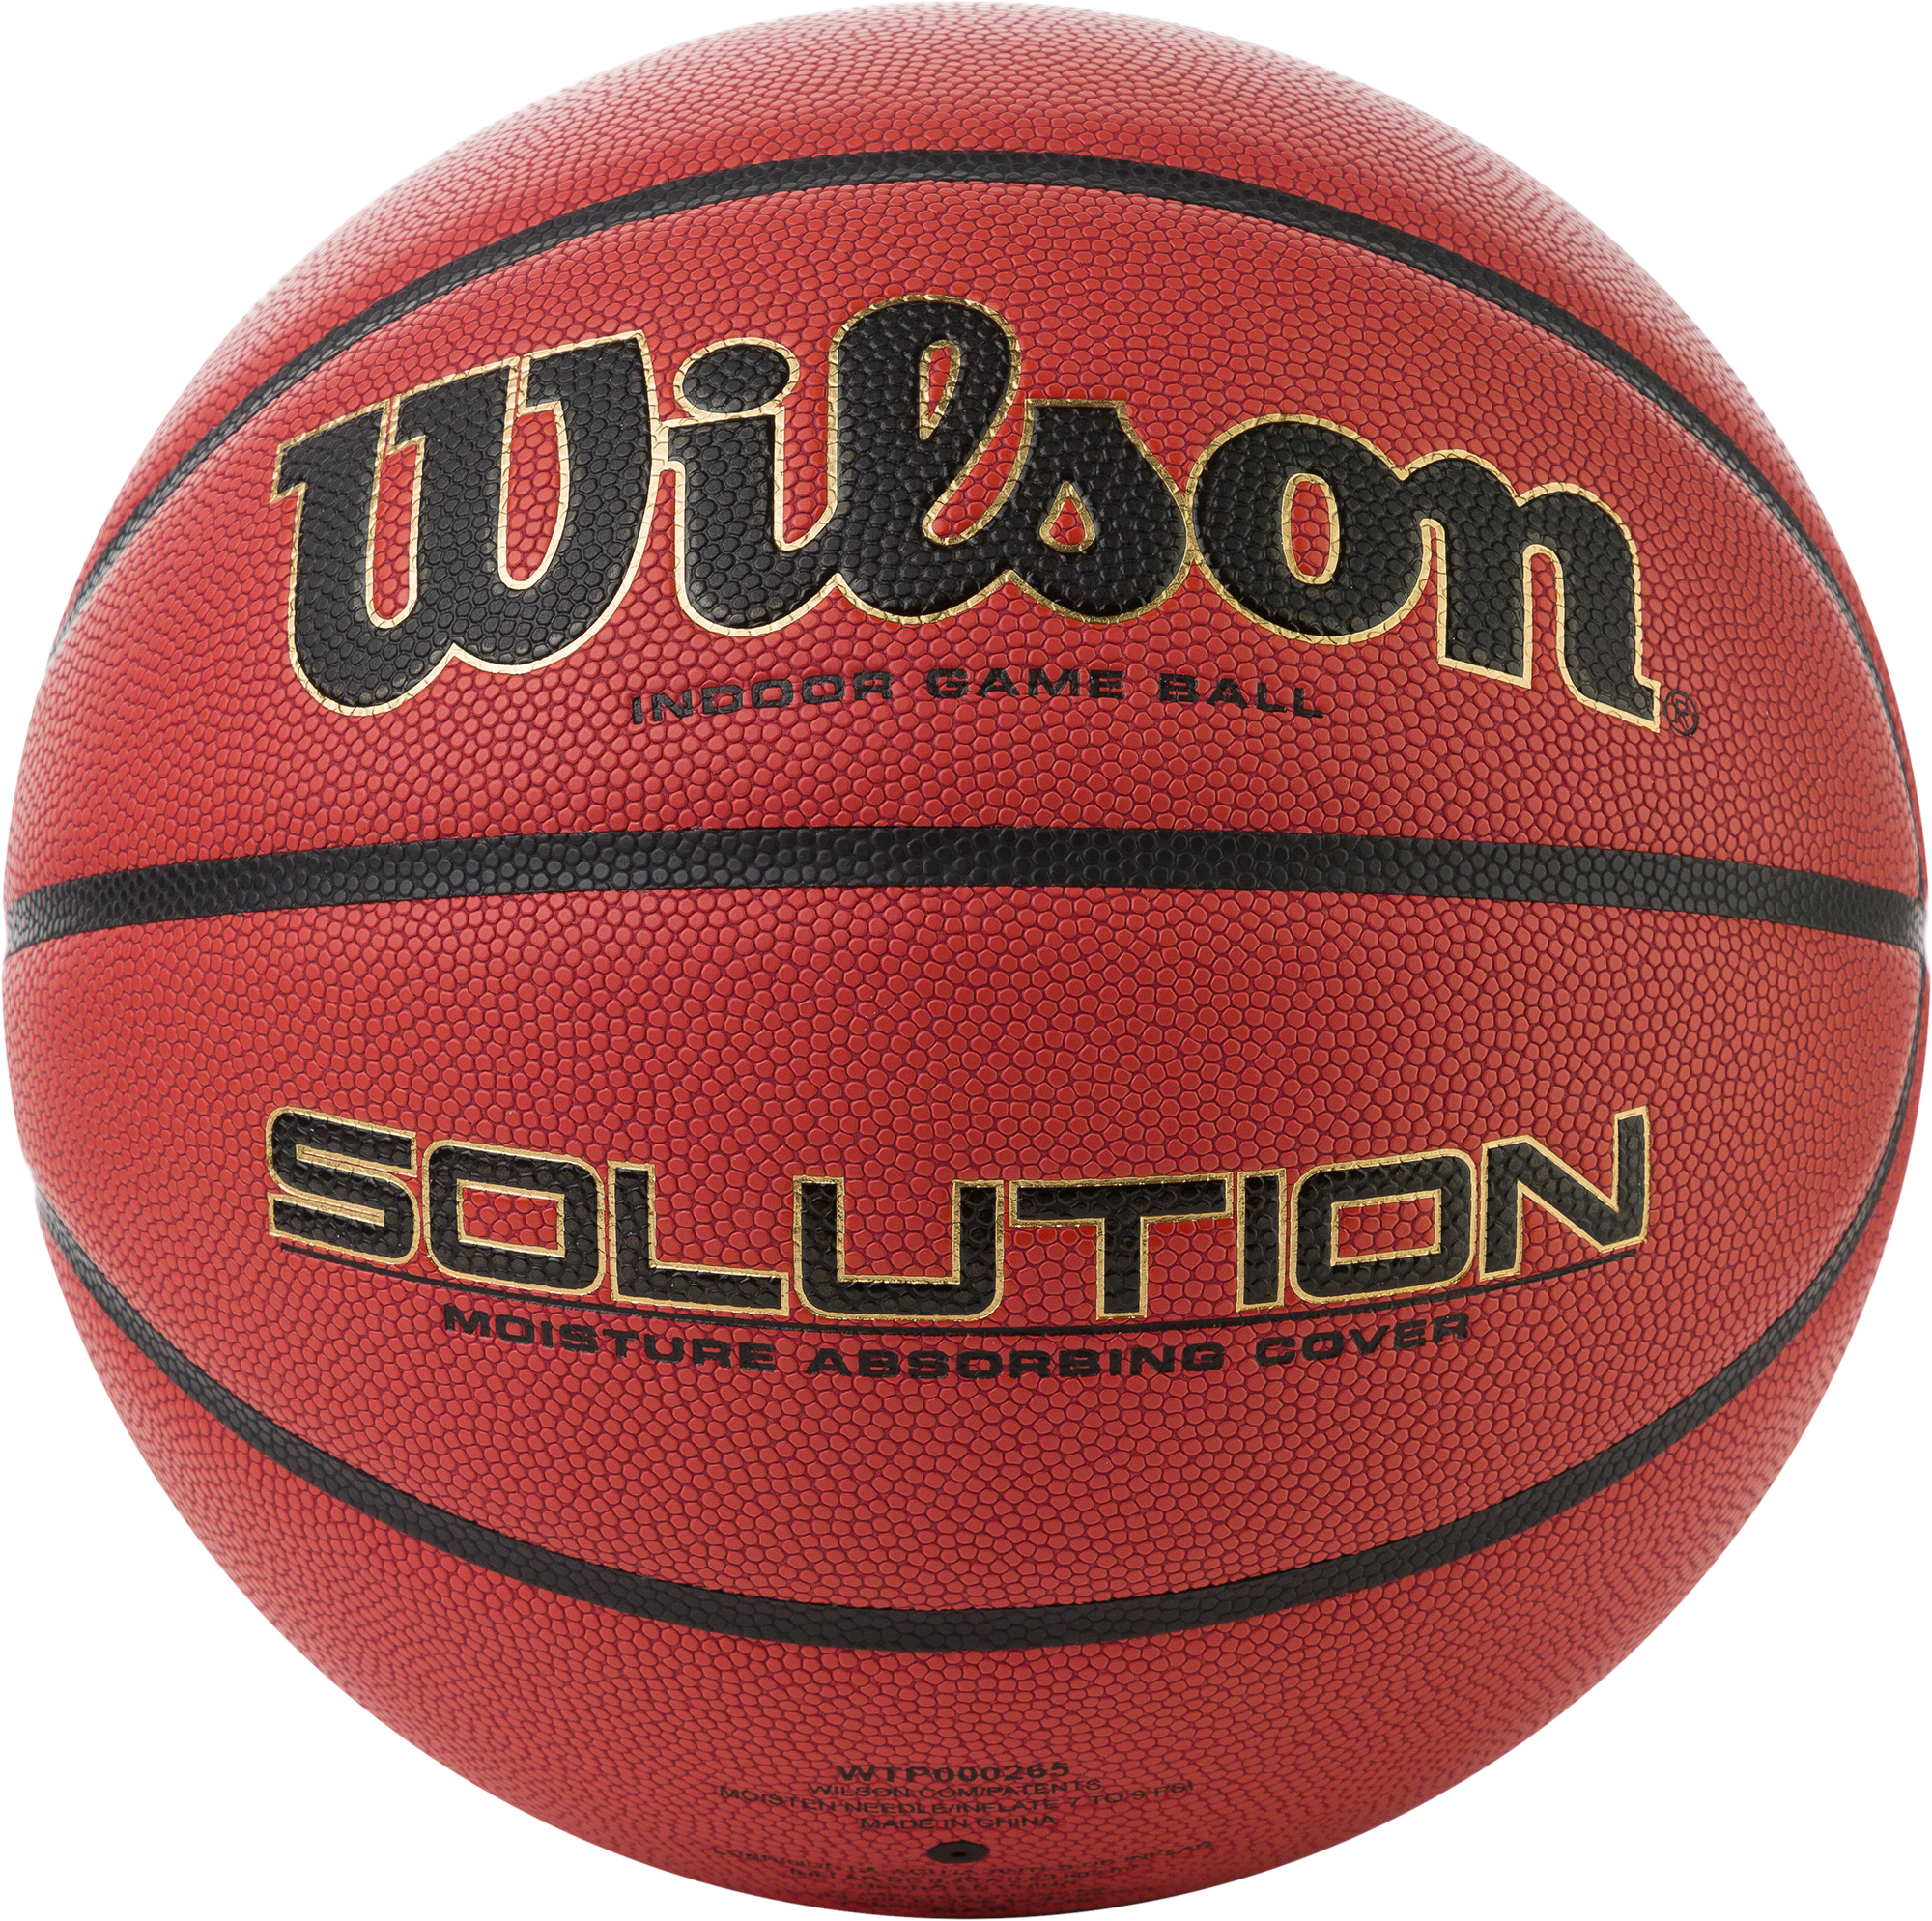 цена на Wilson Мяч баскетбольный Wilson VTB SOLUTION OFFICIAL GAME BALL